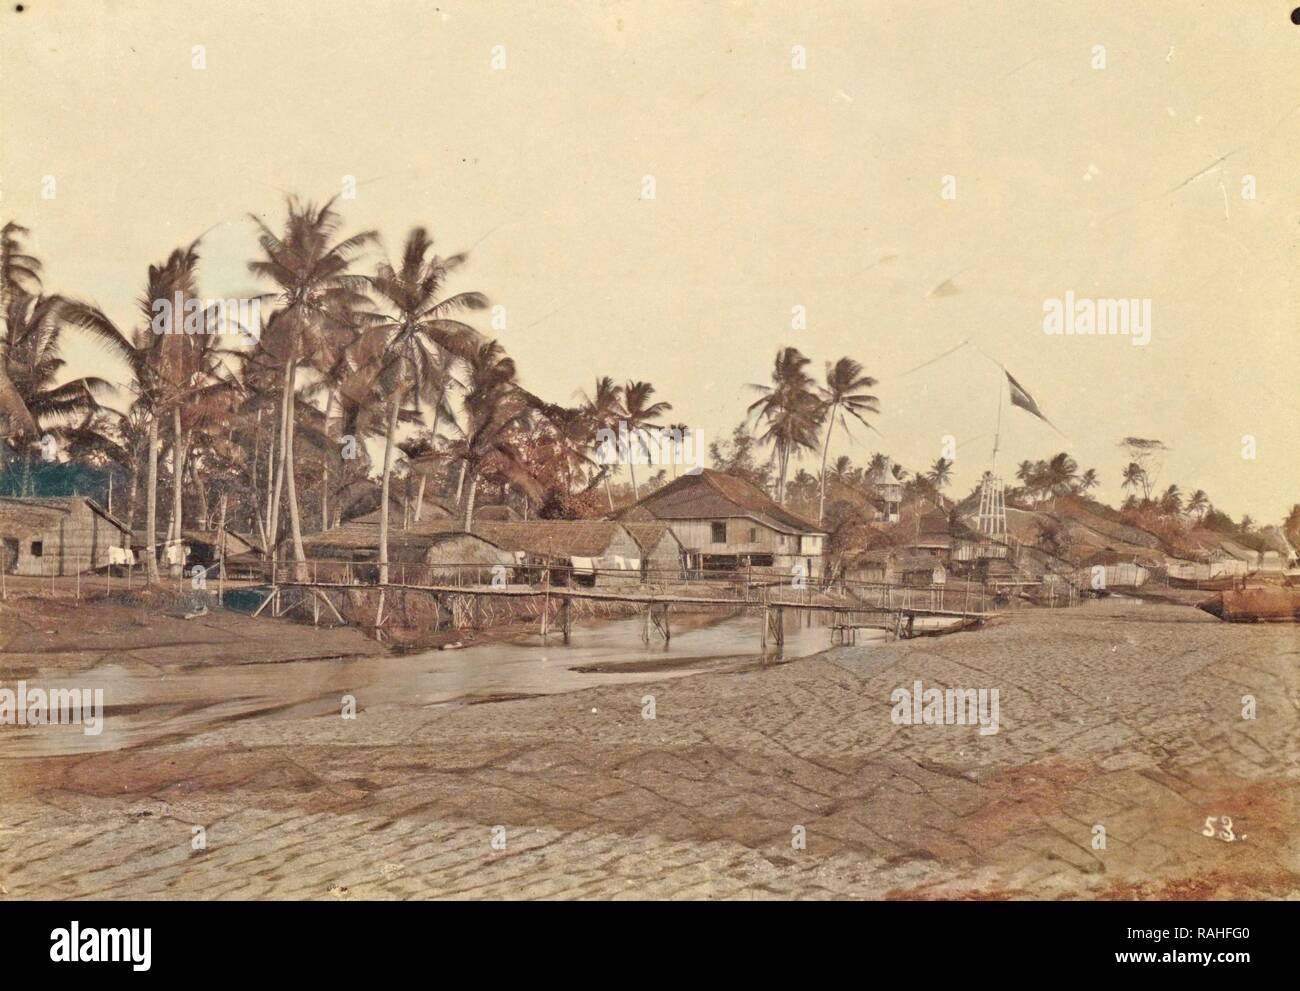 Newly Renovated And Re Imagined Central >> Dutch East Indies Stock Photos & Dutch East Indies Stock Images - Alamy